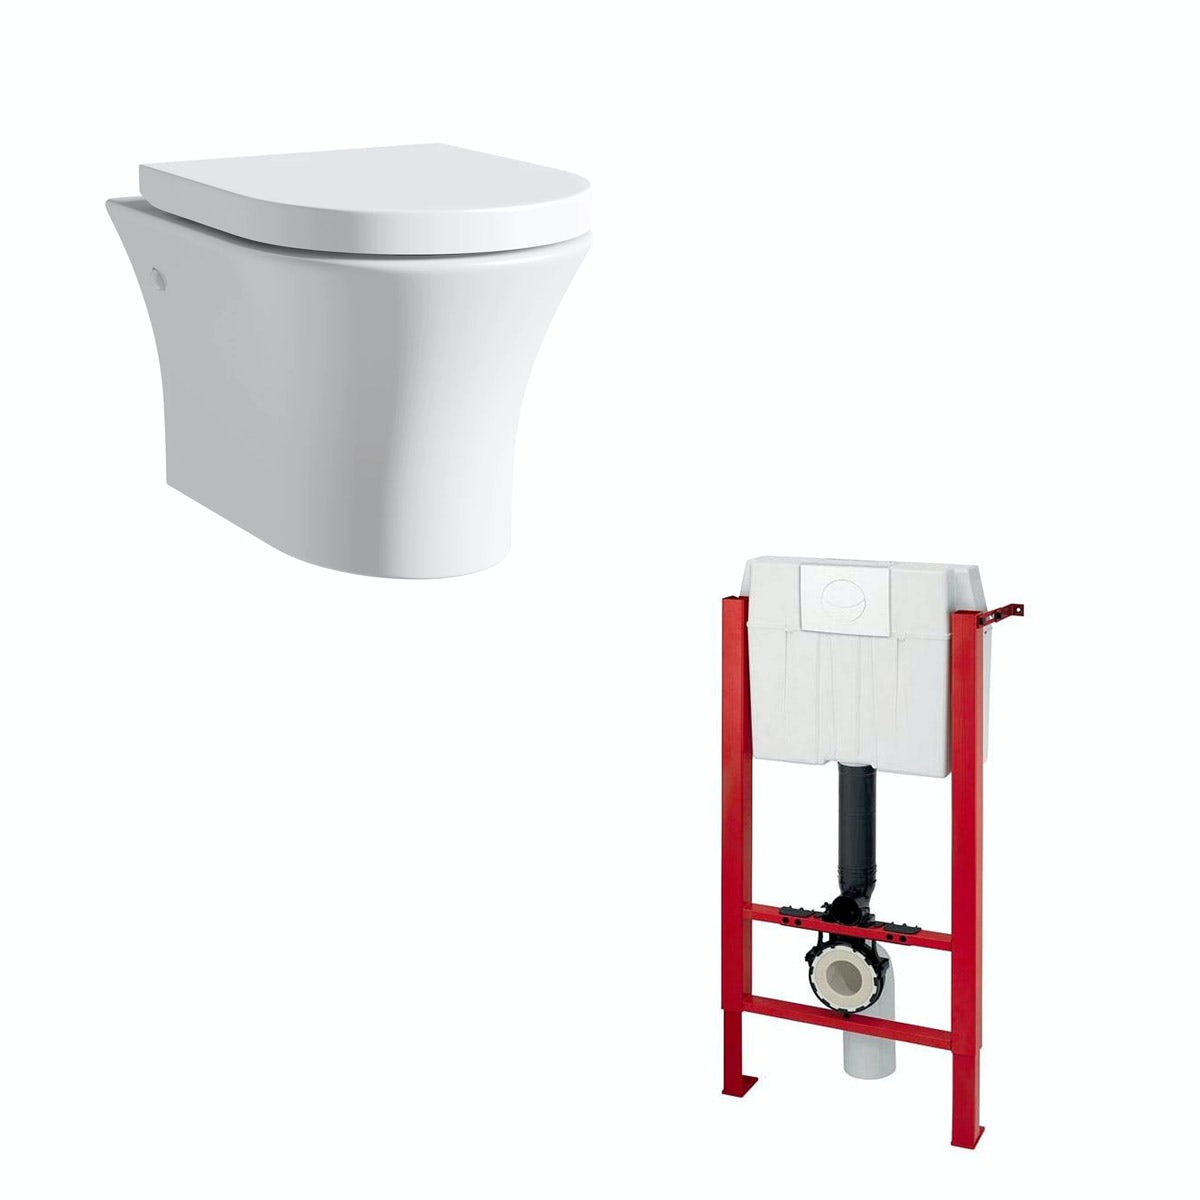 Mode Hardy rimless wall hung toilet with soft close seat and wall mounting frame